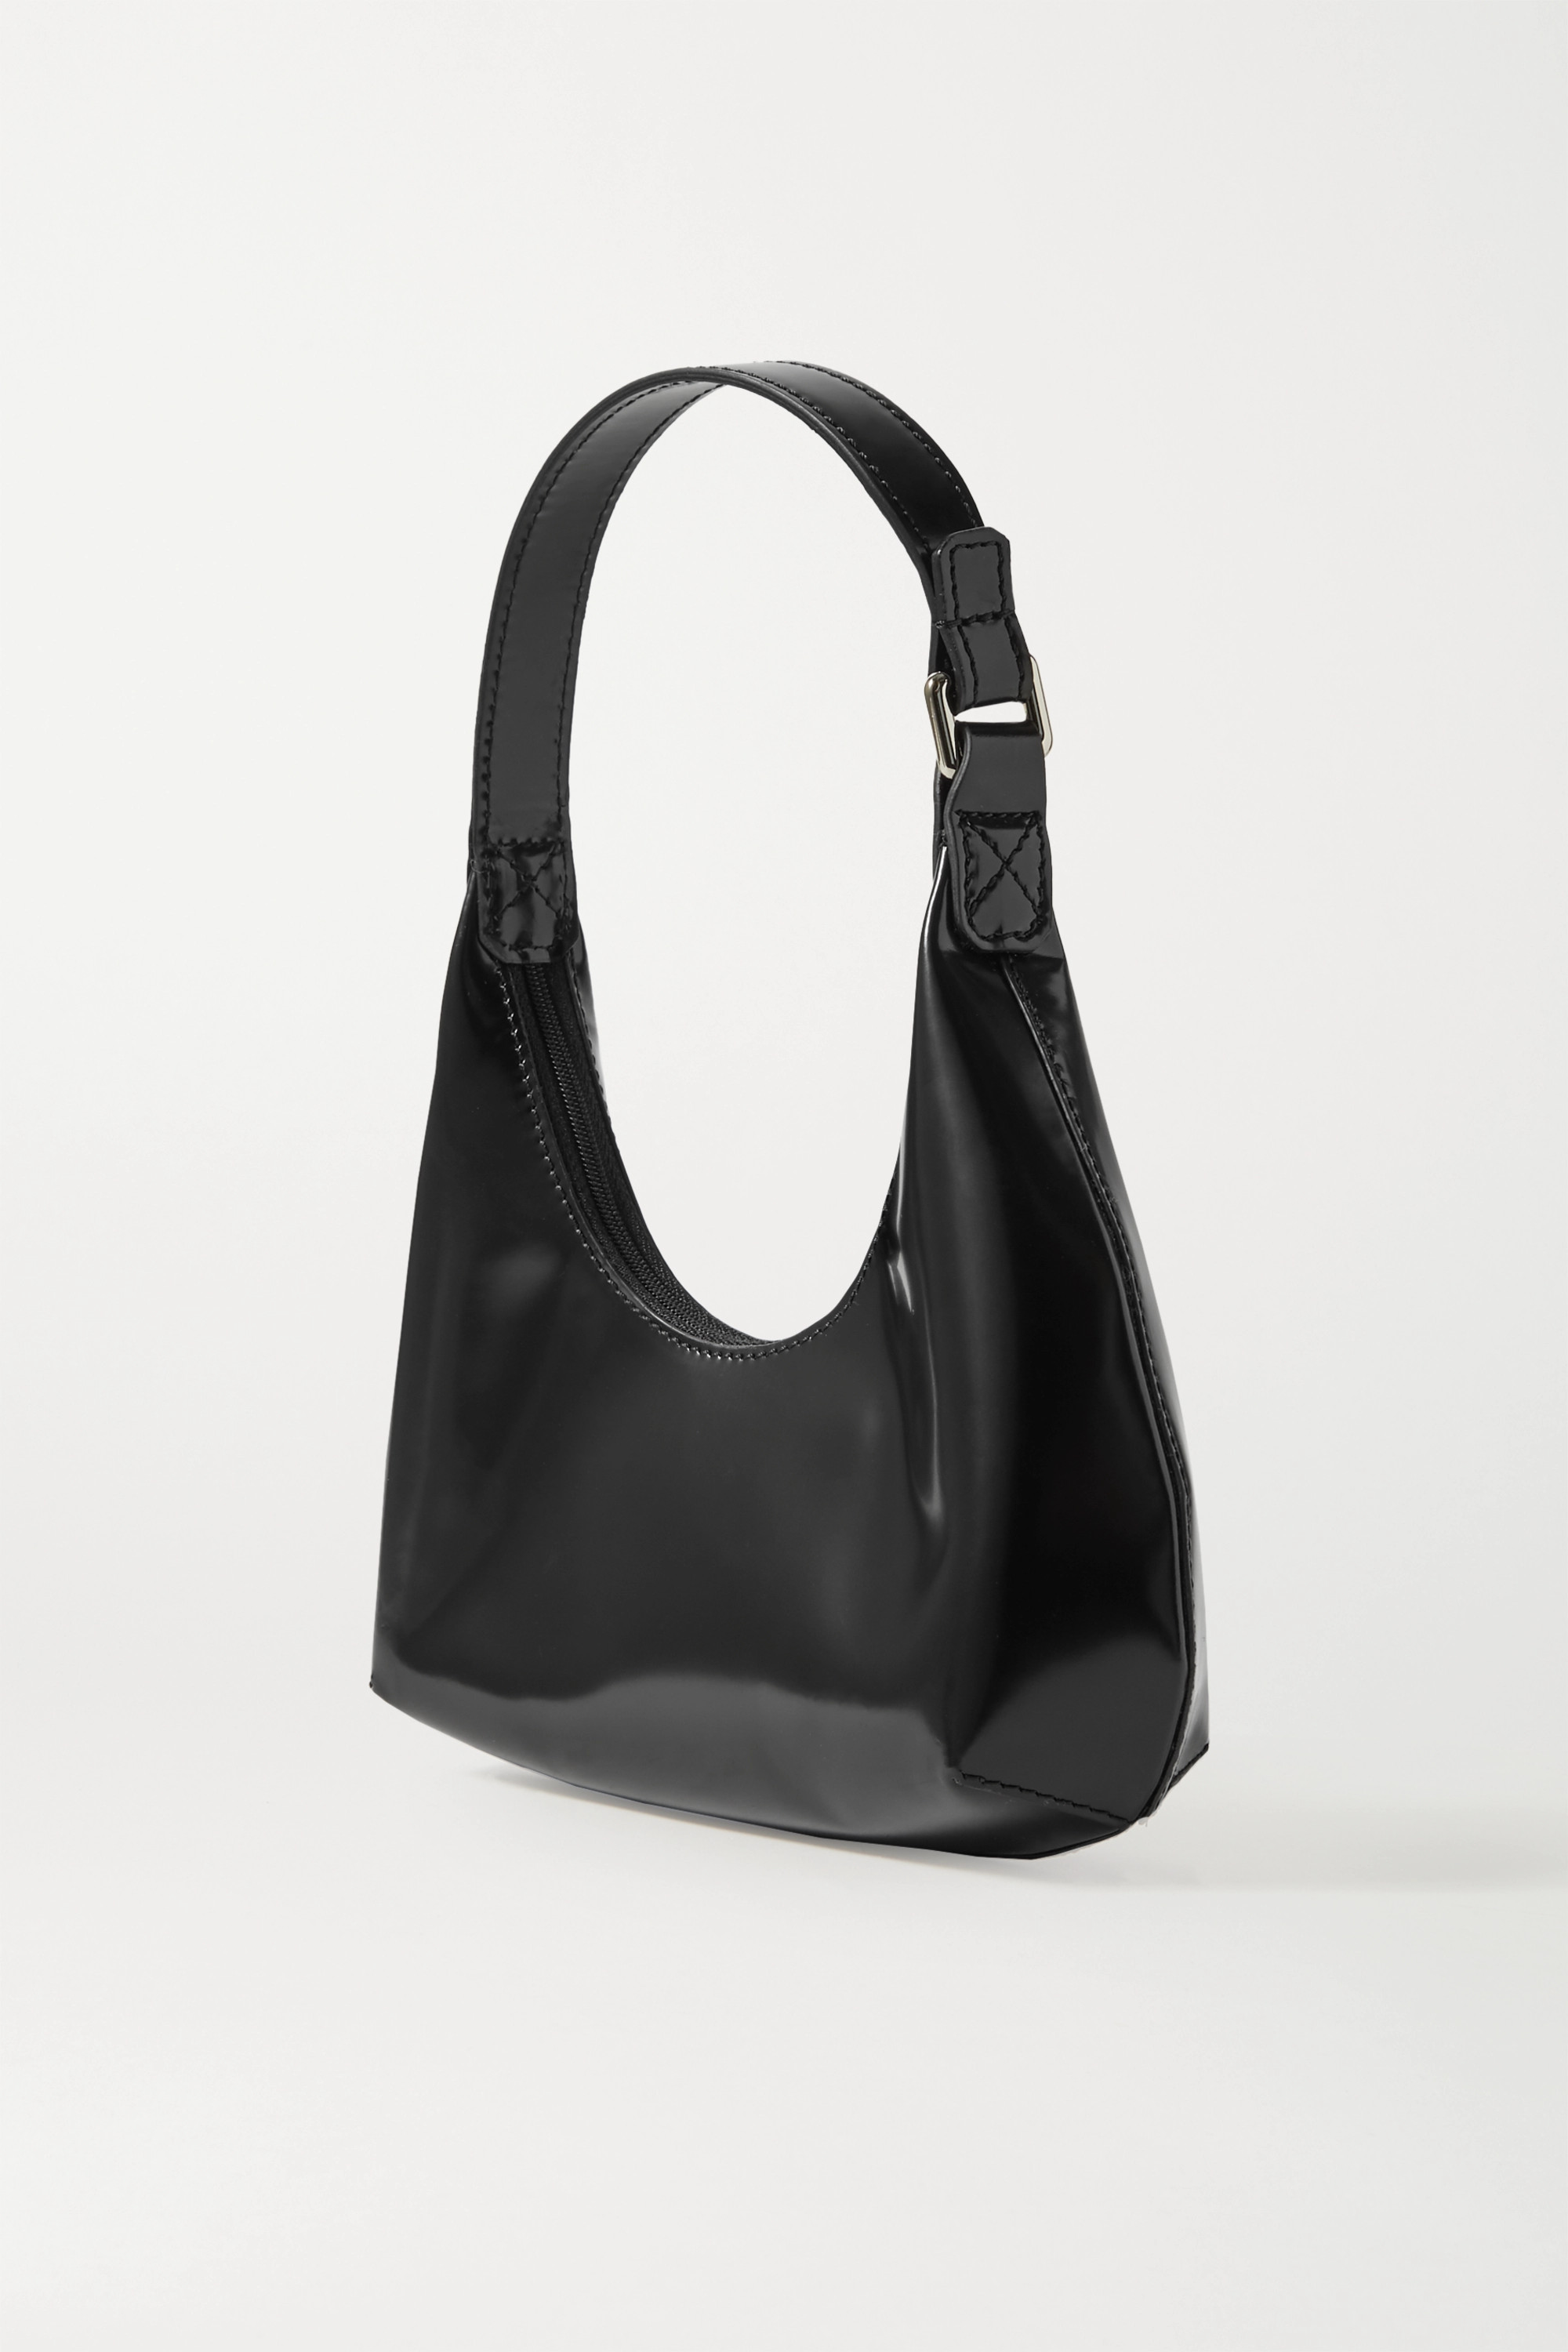 BY FAR Amber Baby glossed-leather tote